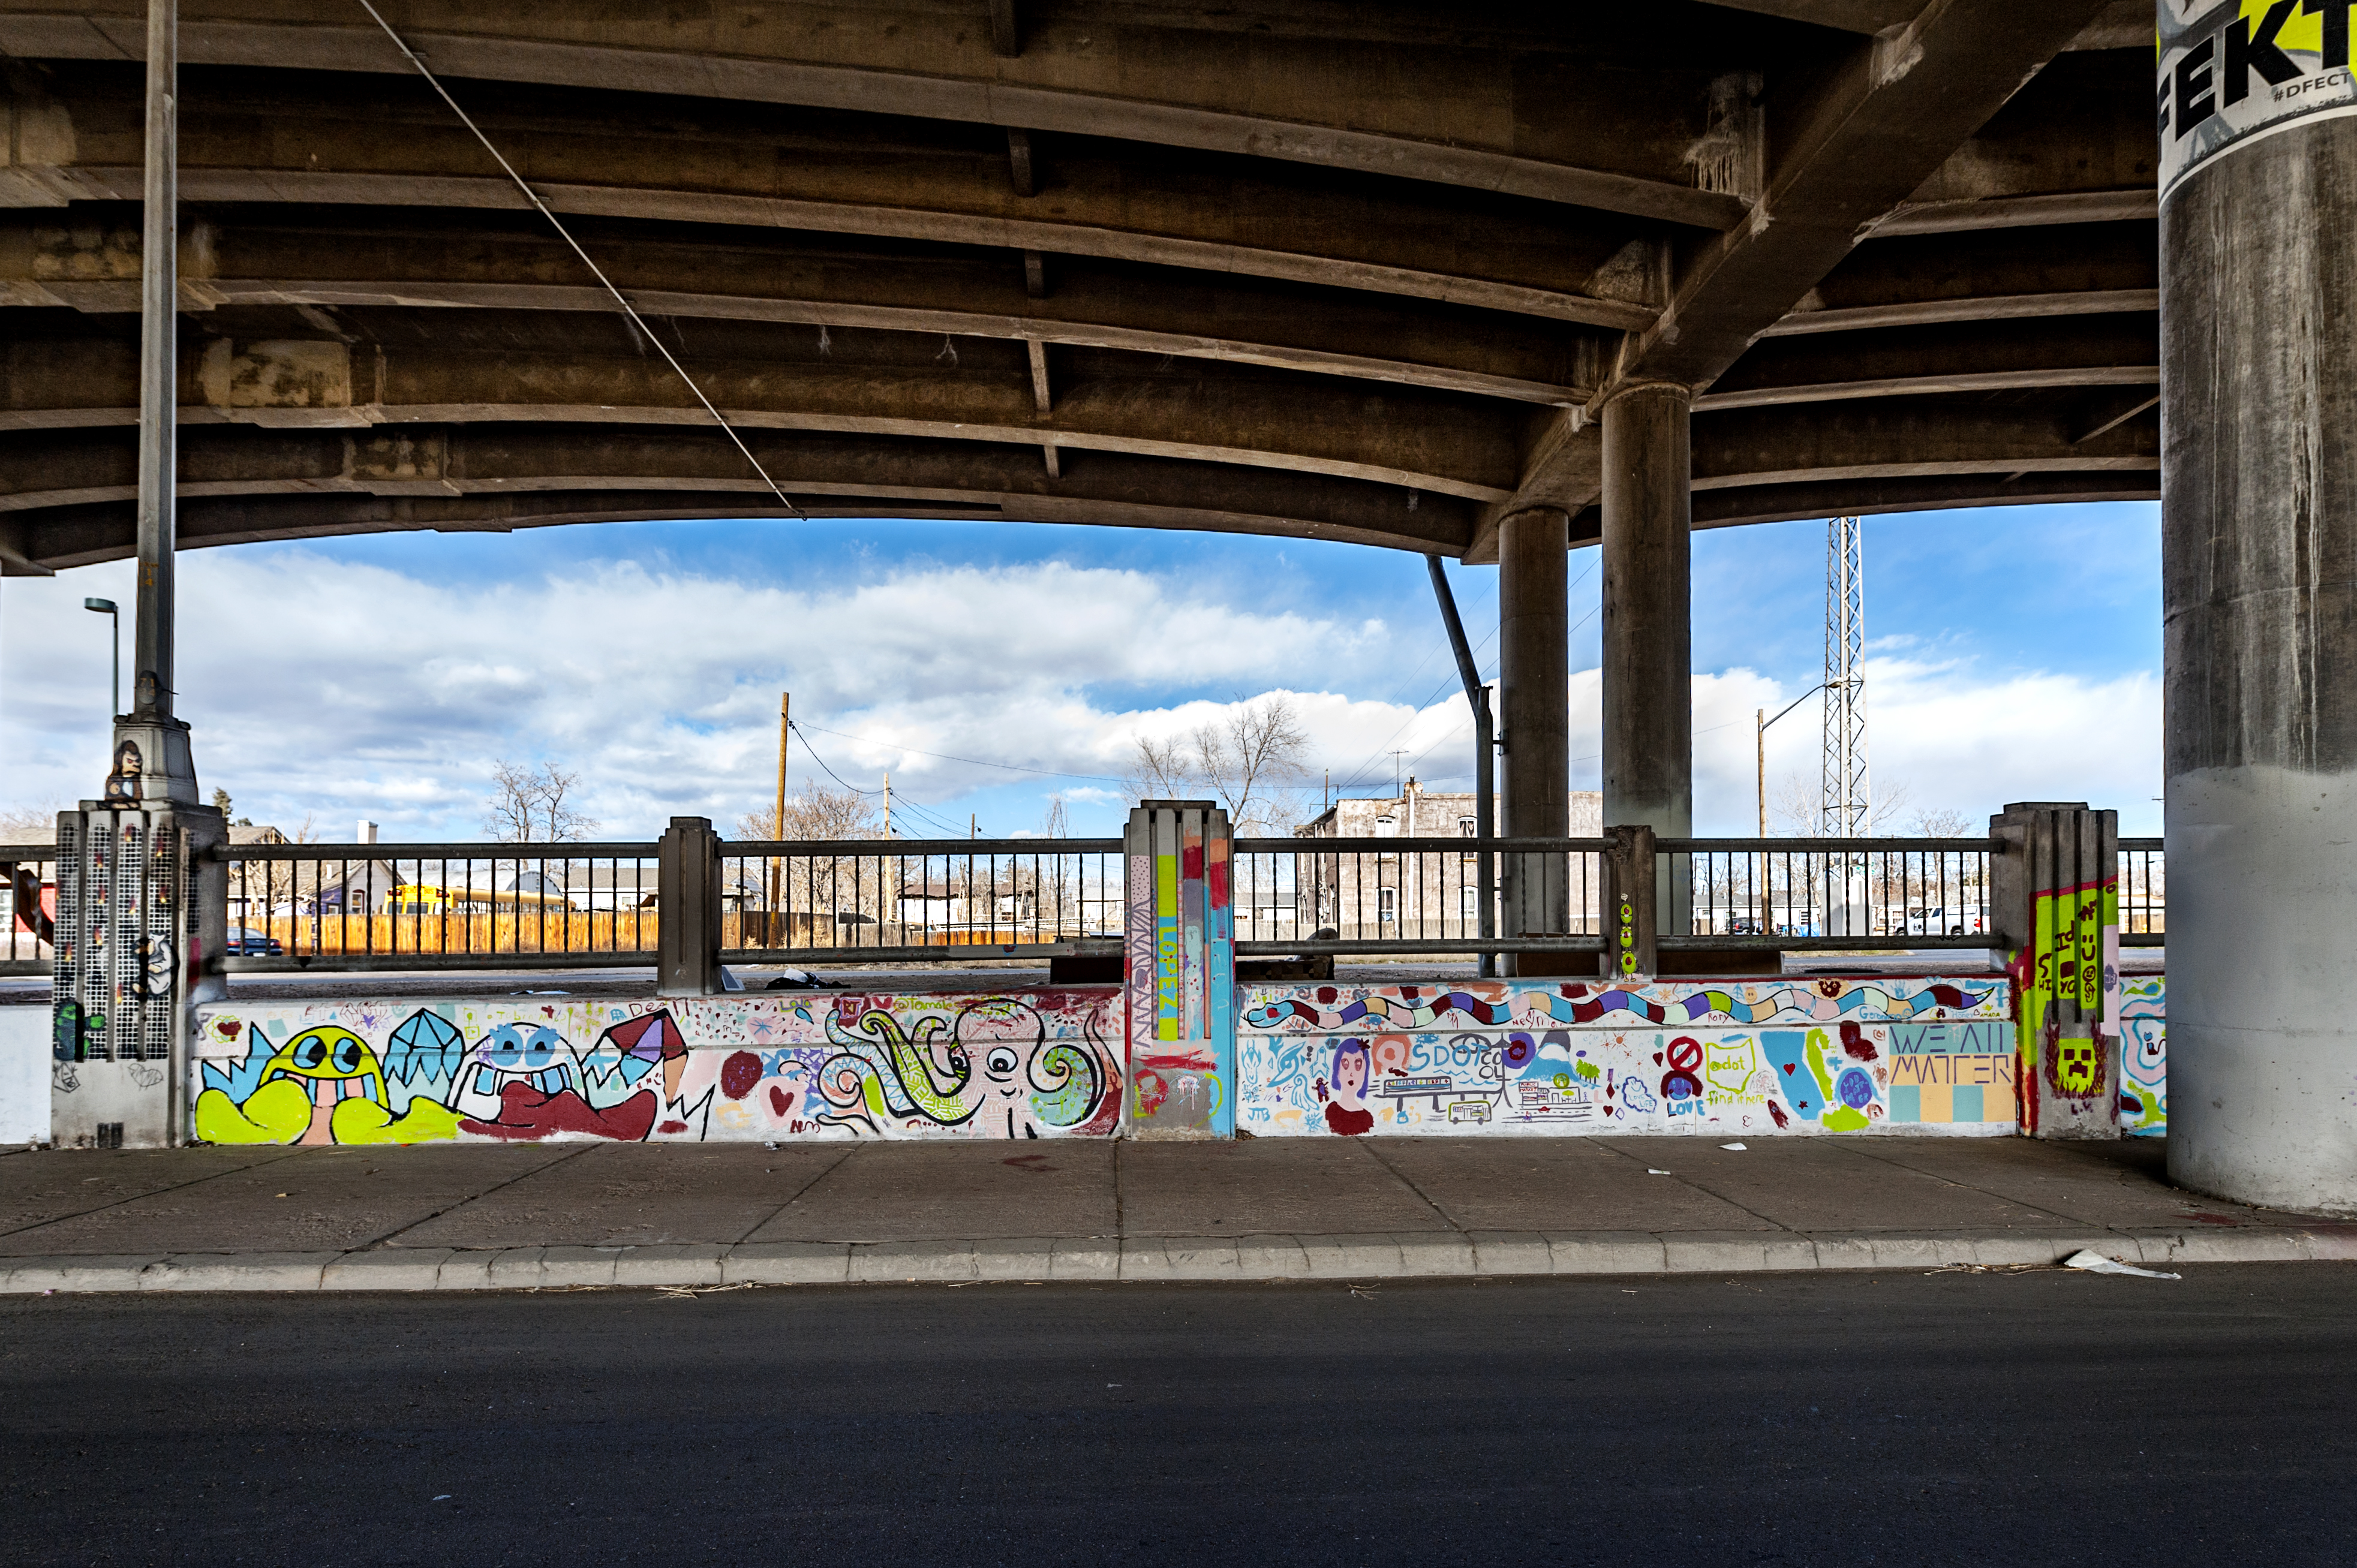 Untitled (colorful mural featuring various whimsical characters and forms)